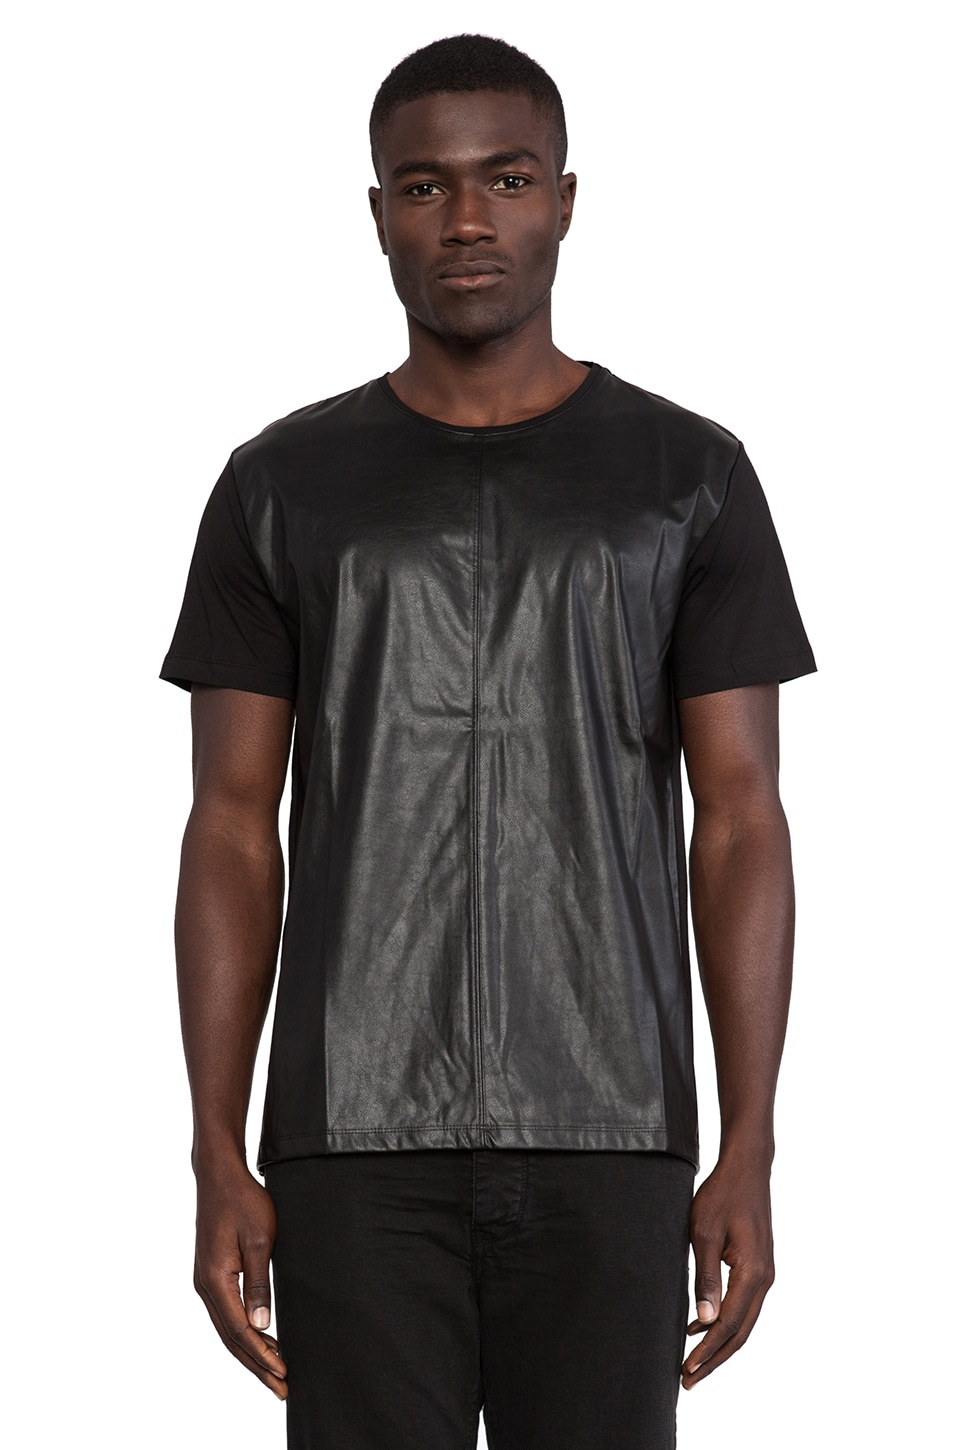 Sons of Heroes Damaged Goods Leather Sleeved Shirt in Black